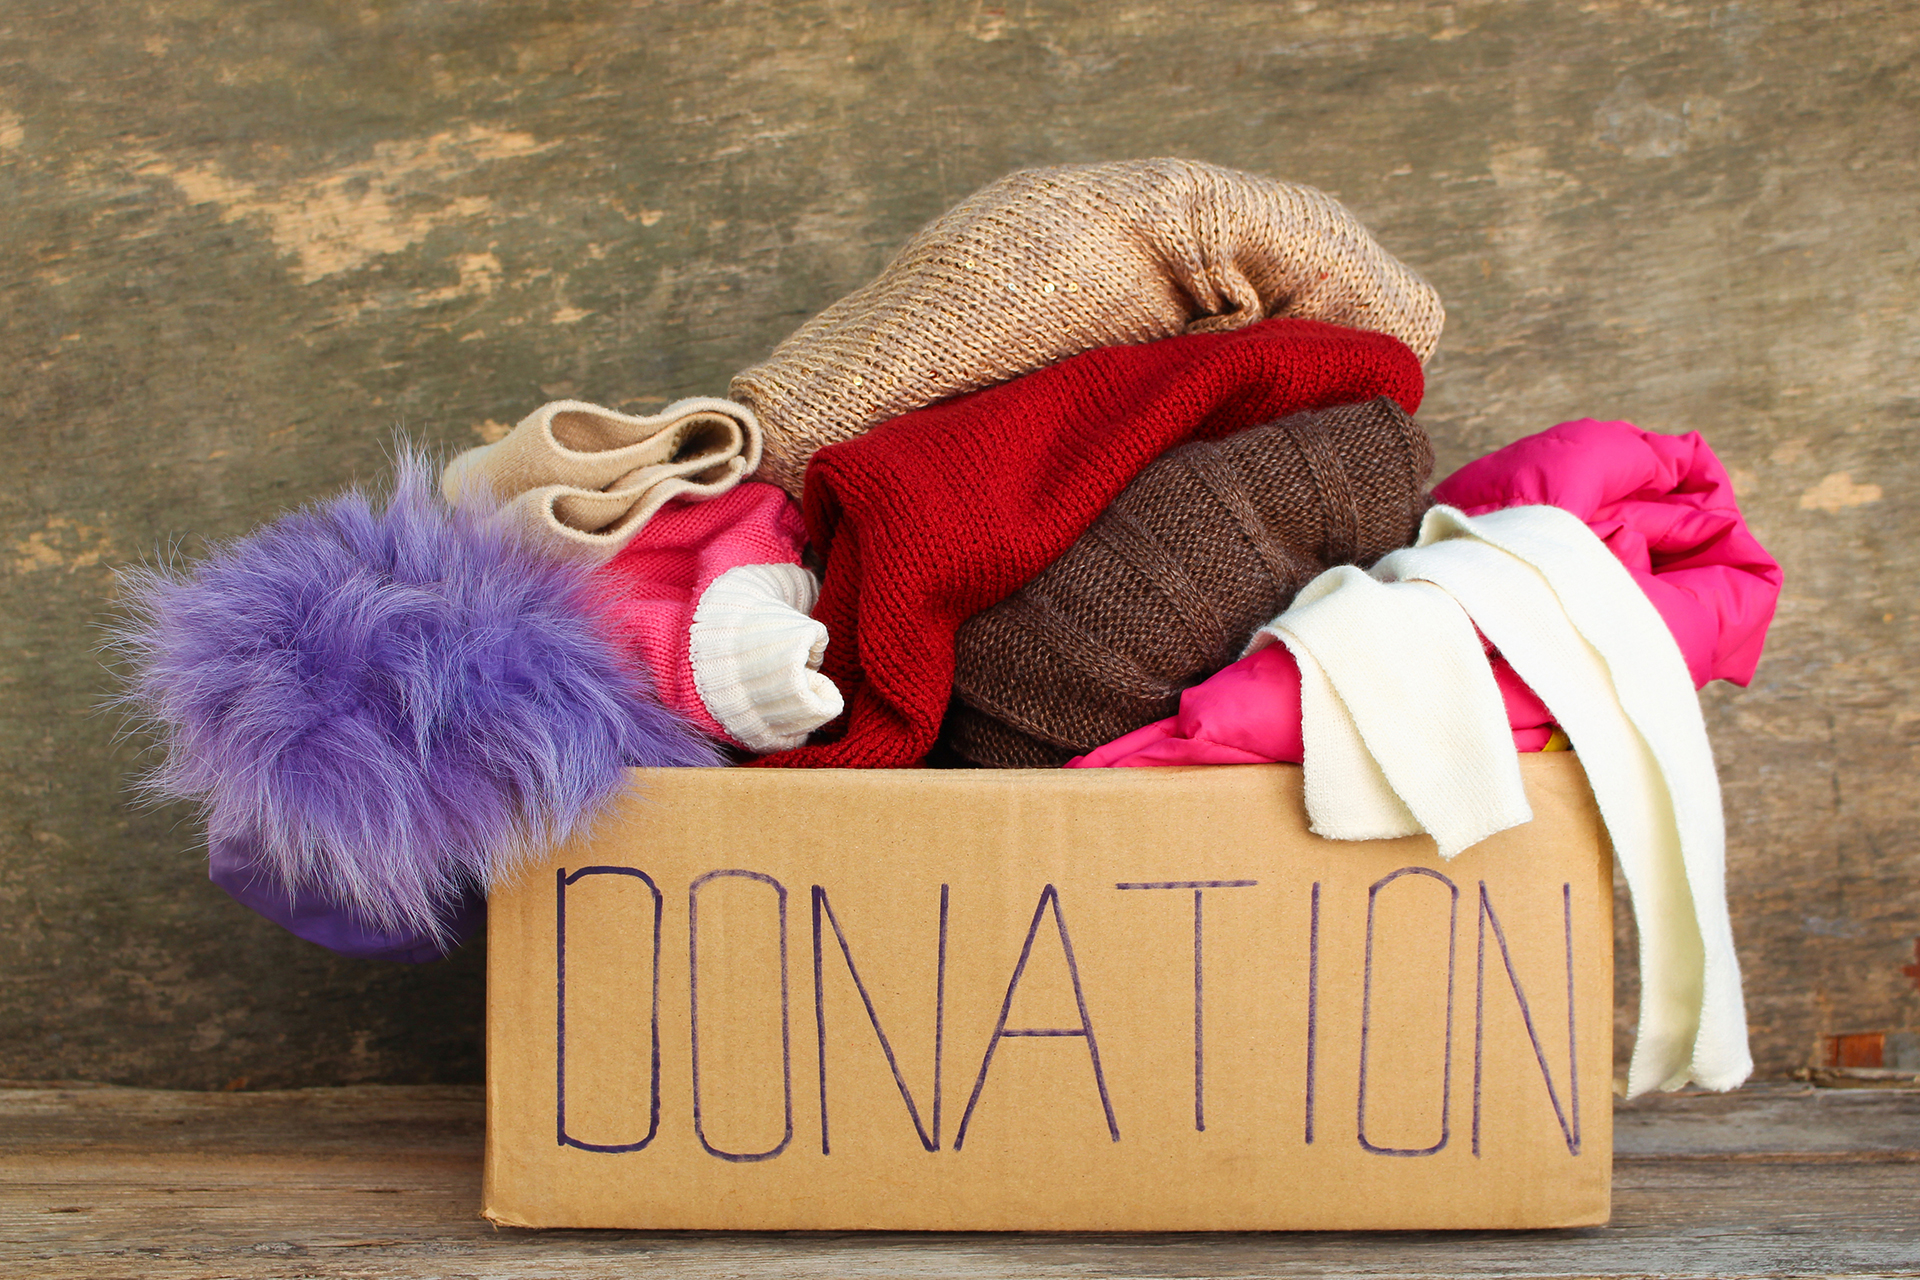 Image of a donation box with cold weather clothing inside